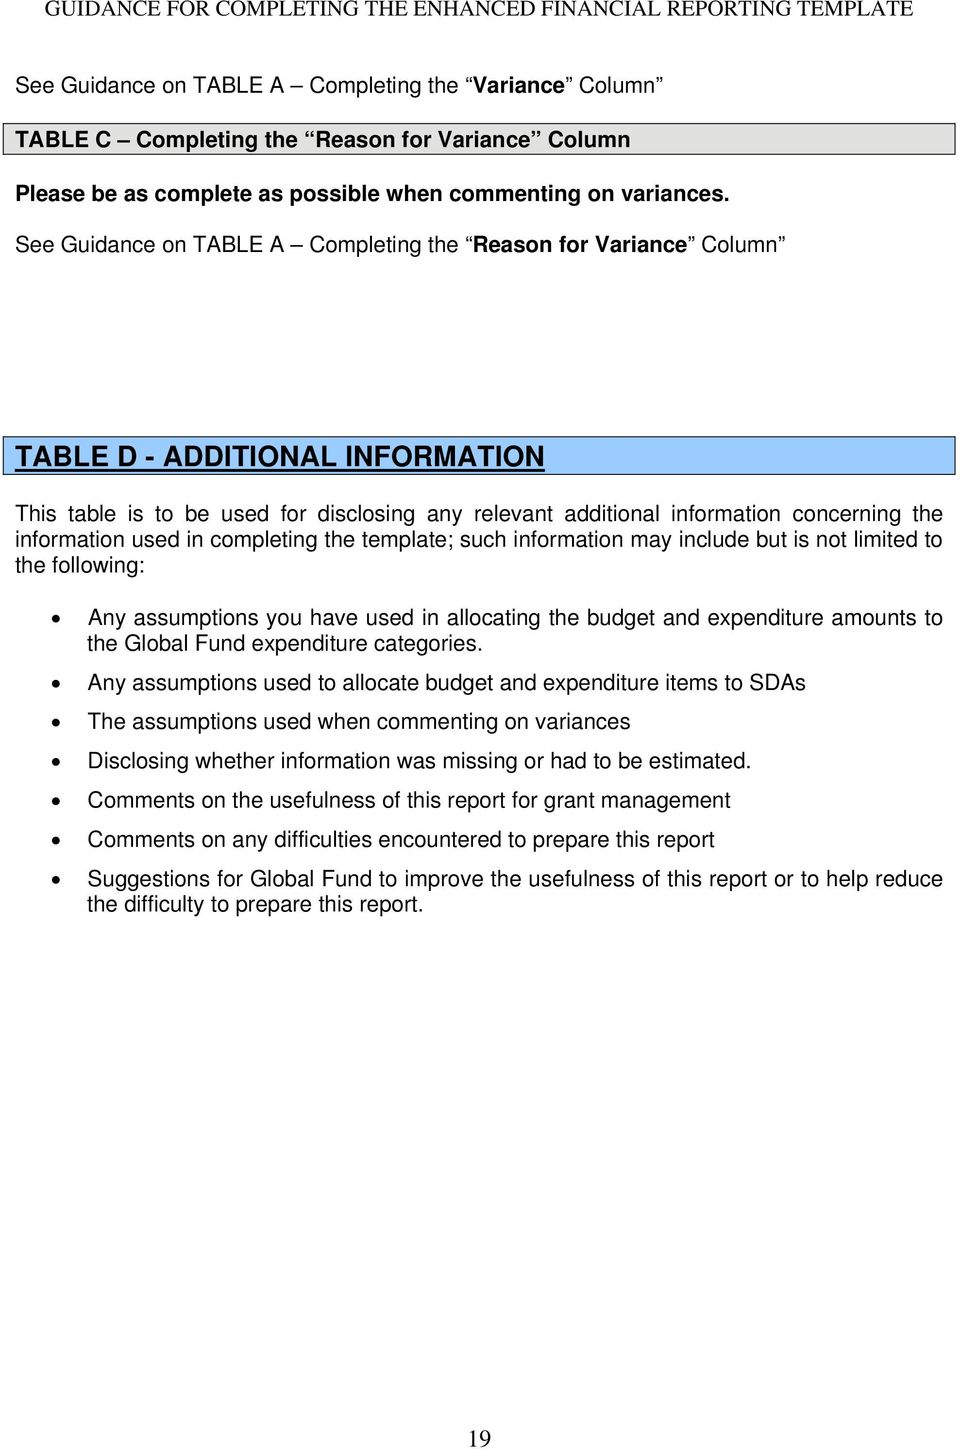 information used in completing the template; such information may include but is not limited to the following: Any assumptions you have used in allocating the budget and expenditure amounts to the